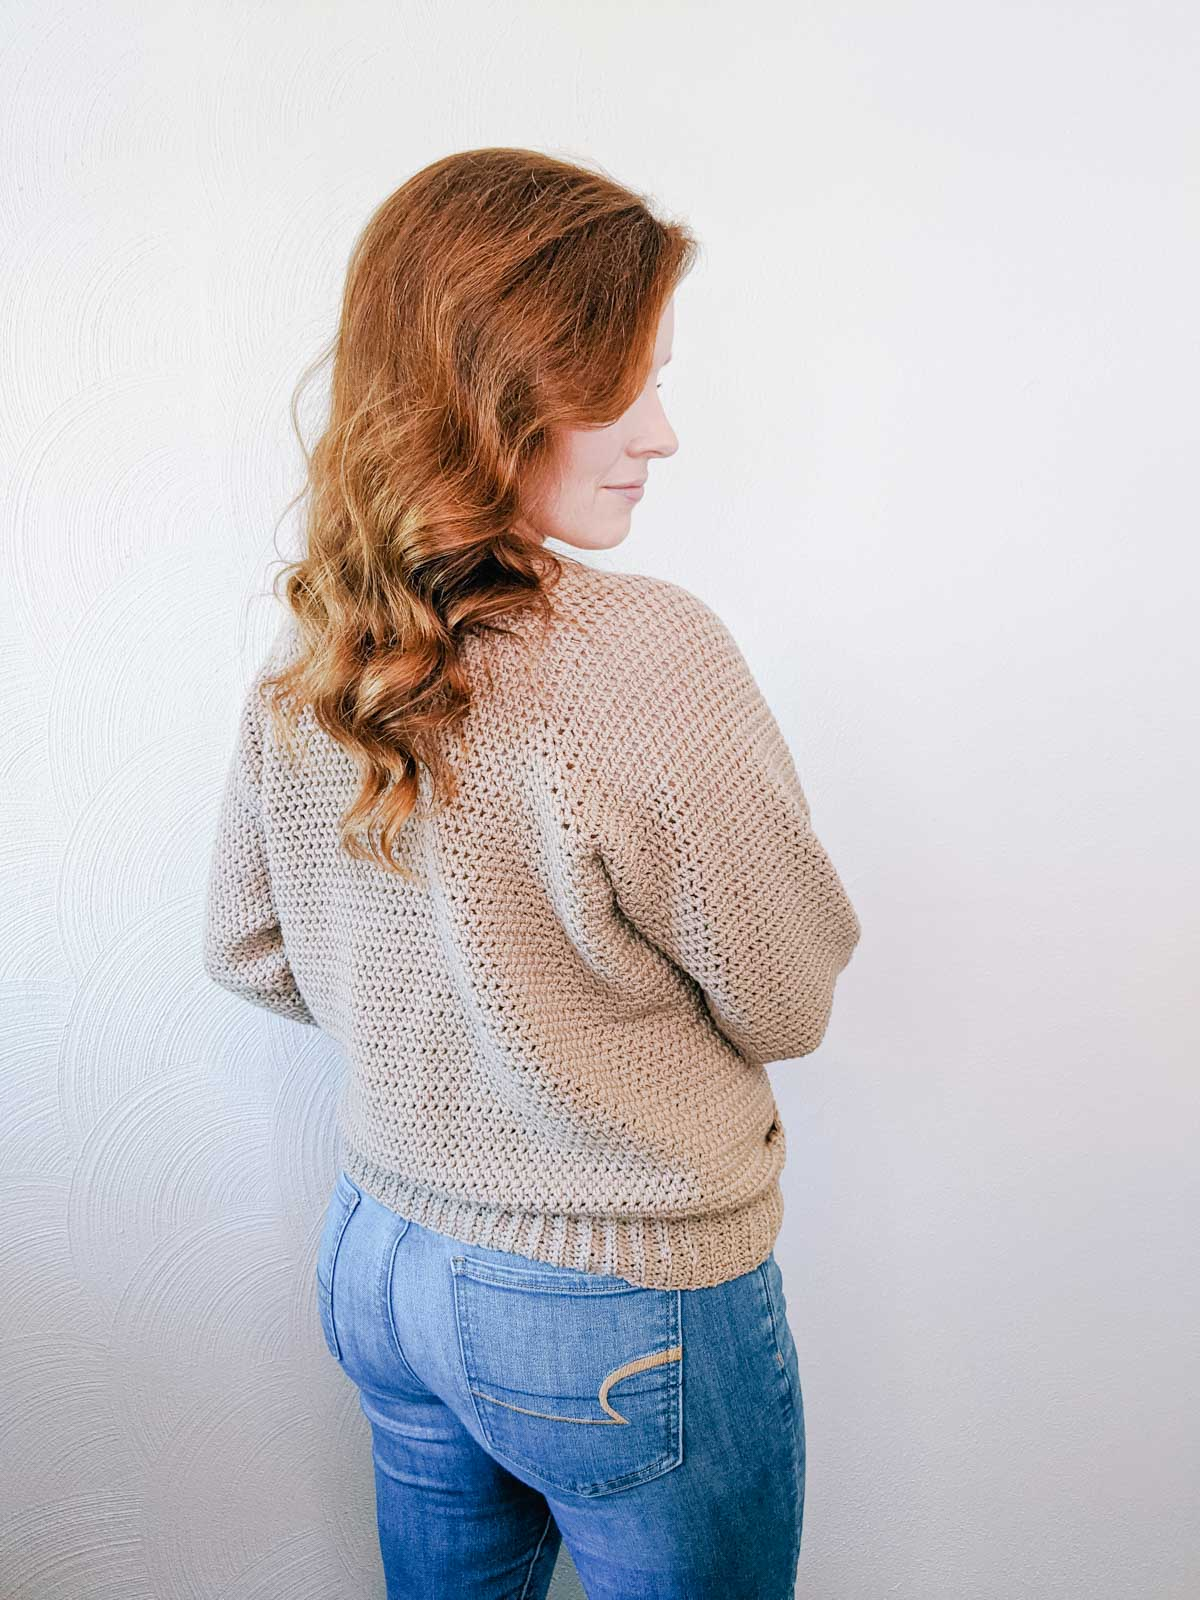 A woman standing in front of a white wall with her back to the camera. She has long red hair, and is wearing blue jeans and a crochet sweater.